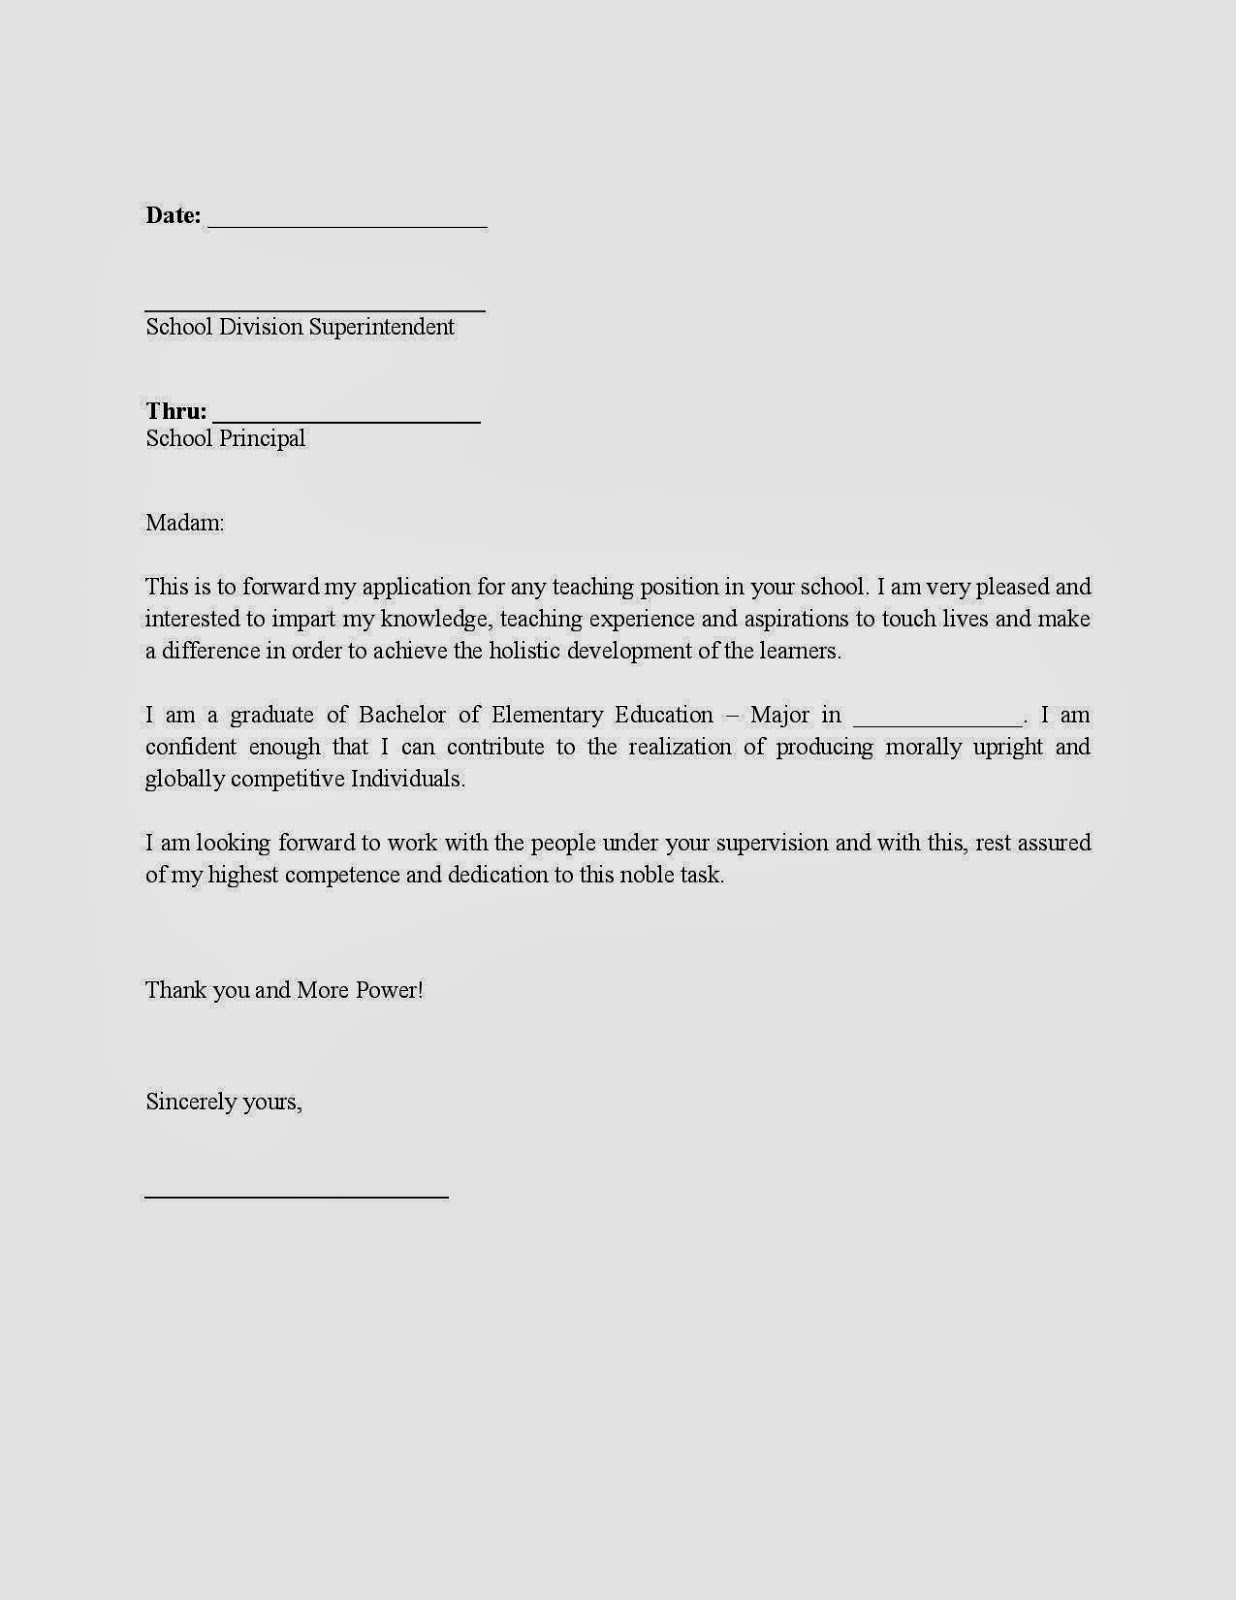 Job application for accounts teacher whats new awesome sample thank you essays teachers teacher appreciation poem funny short poems about teachers gracie teacher appreciation poem spiritdancerdesigns